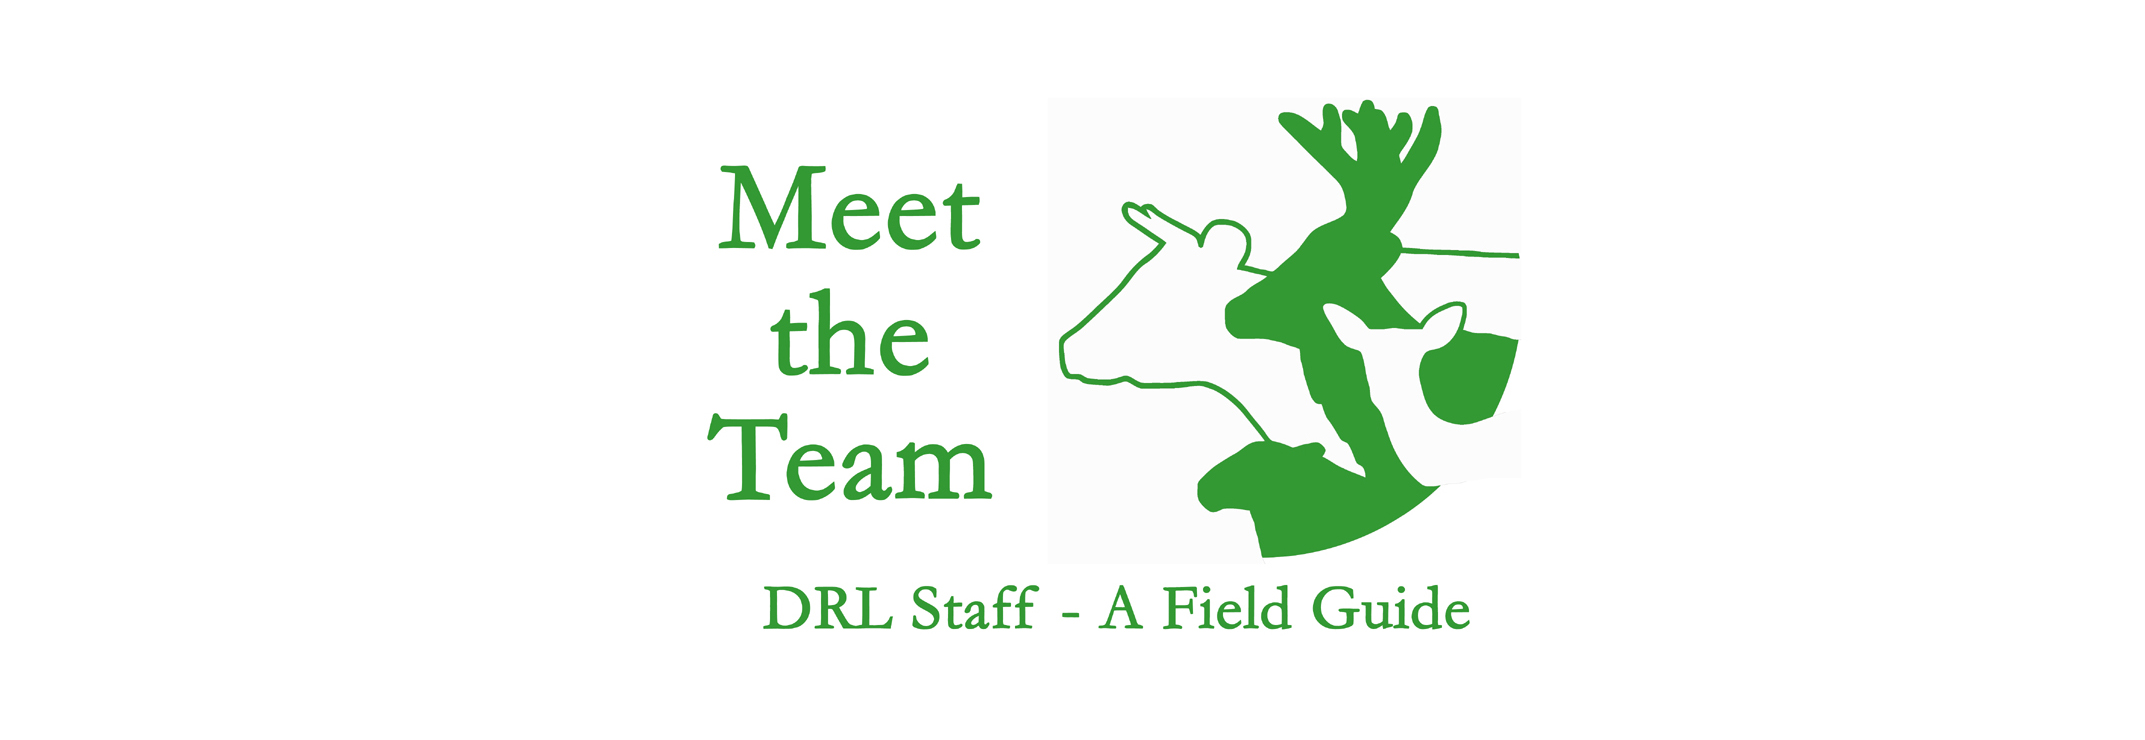 DRL staff - Meet the team